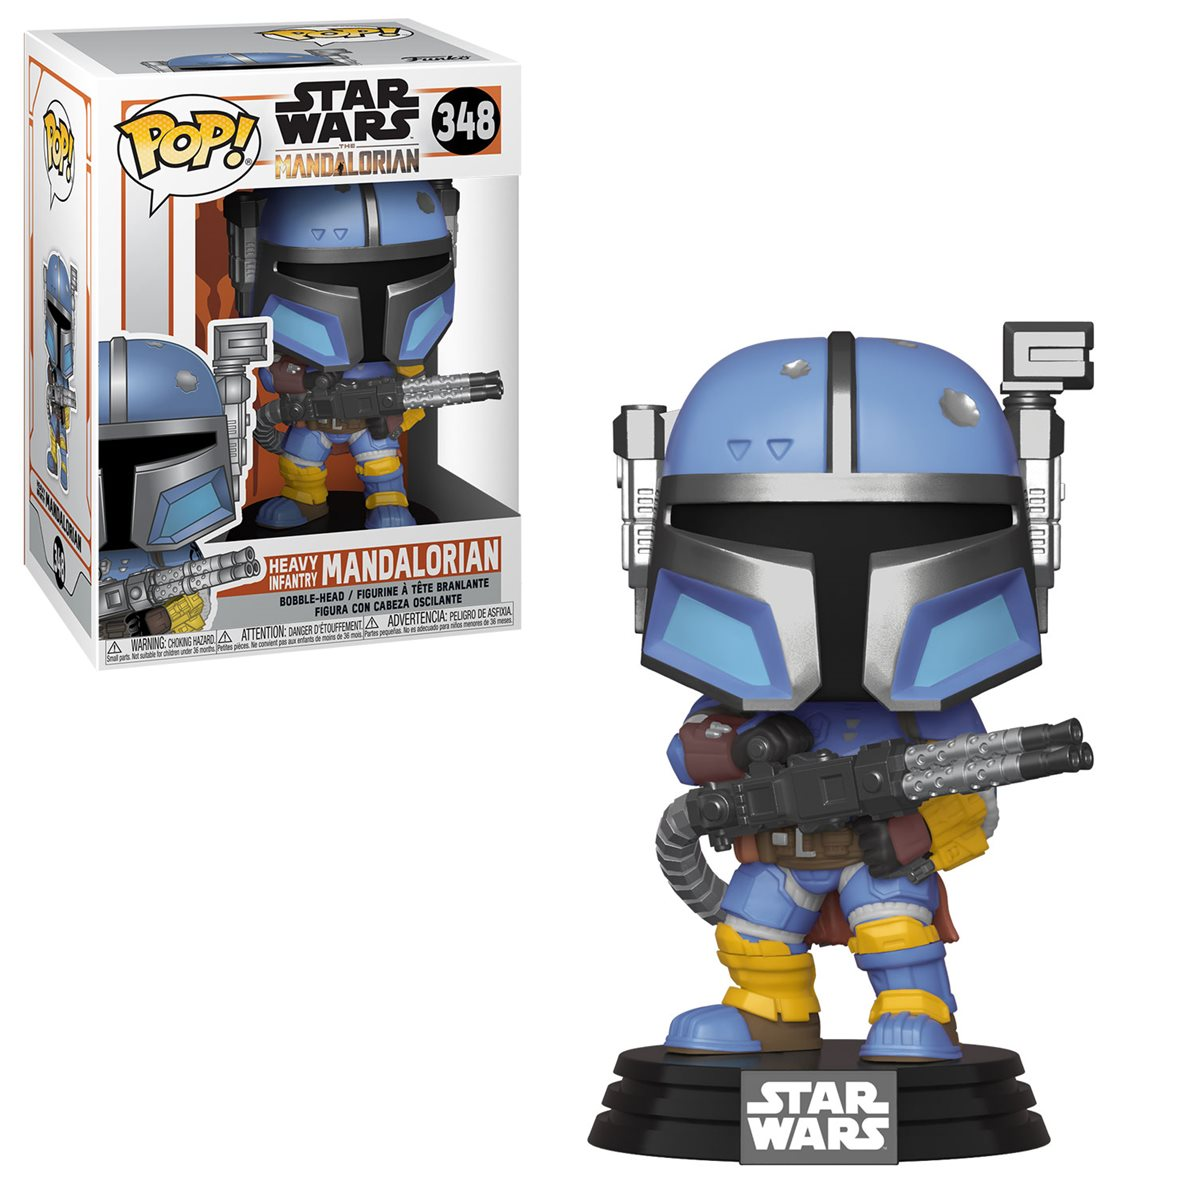 POP! Star Wars 348: Mandalorian - Heavy Infantry Mandalorian